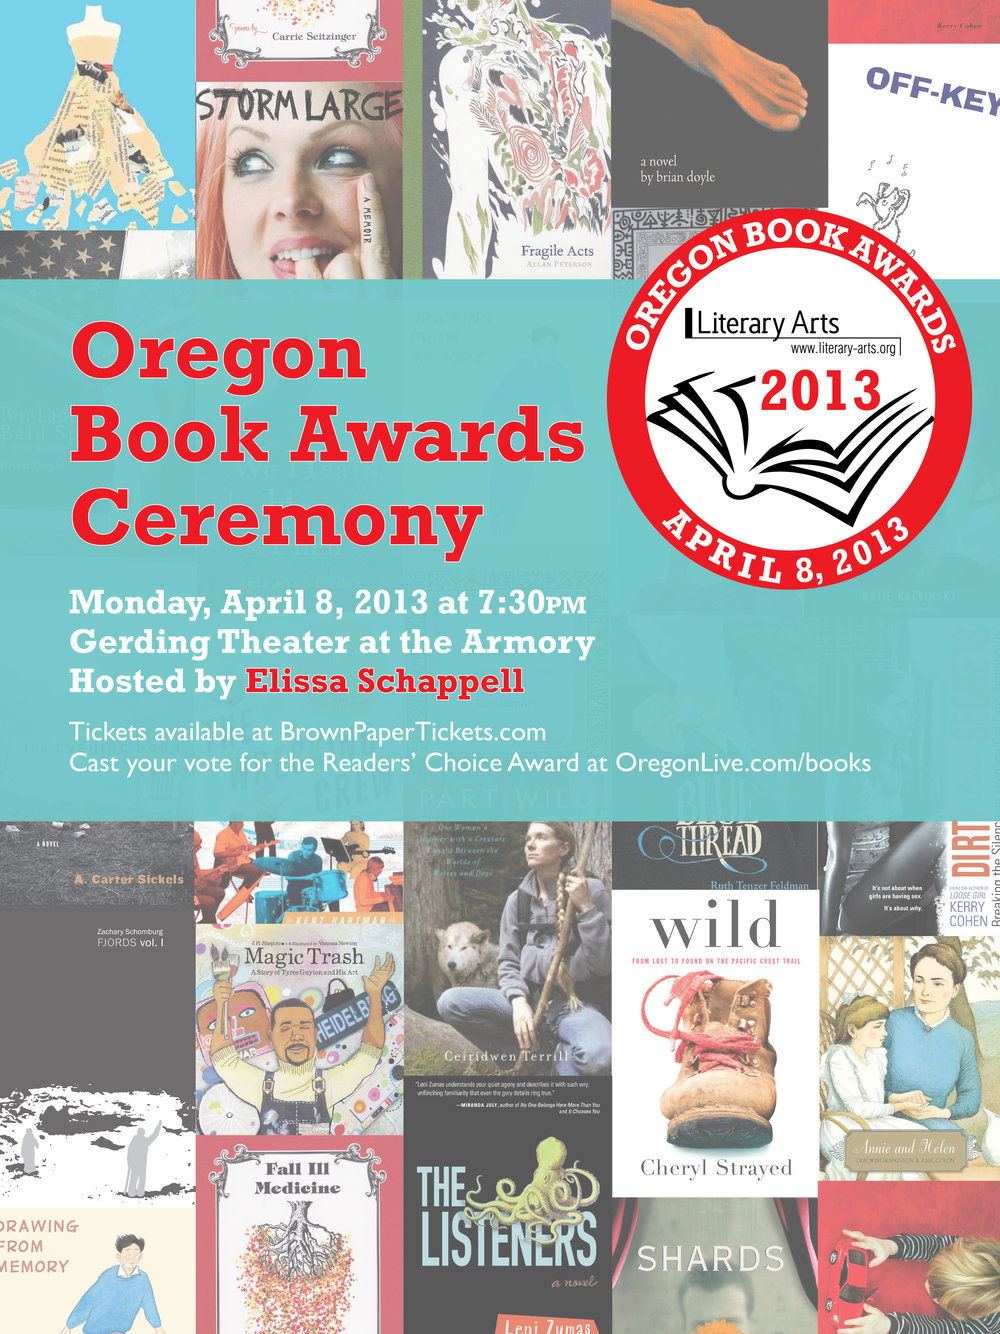 Poster for the 2013 Oregon Book Awards